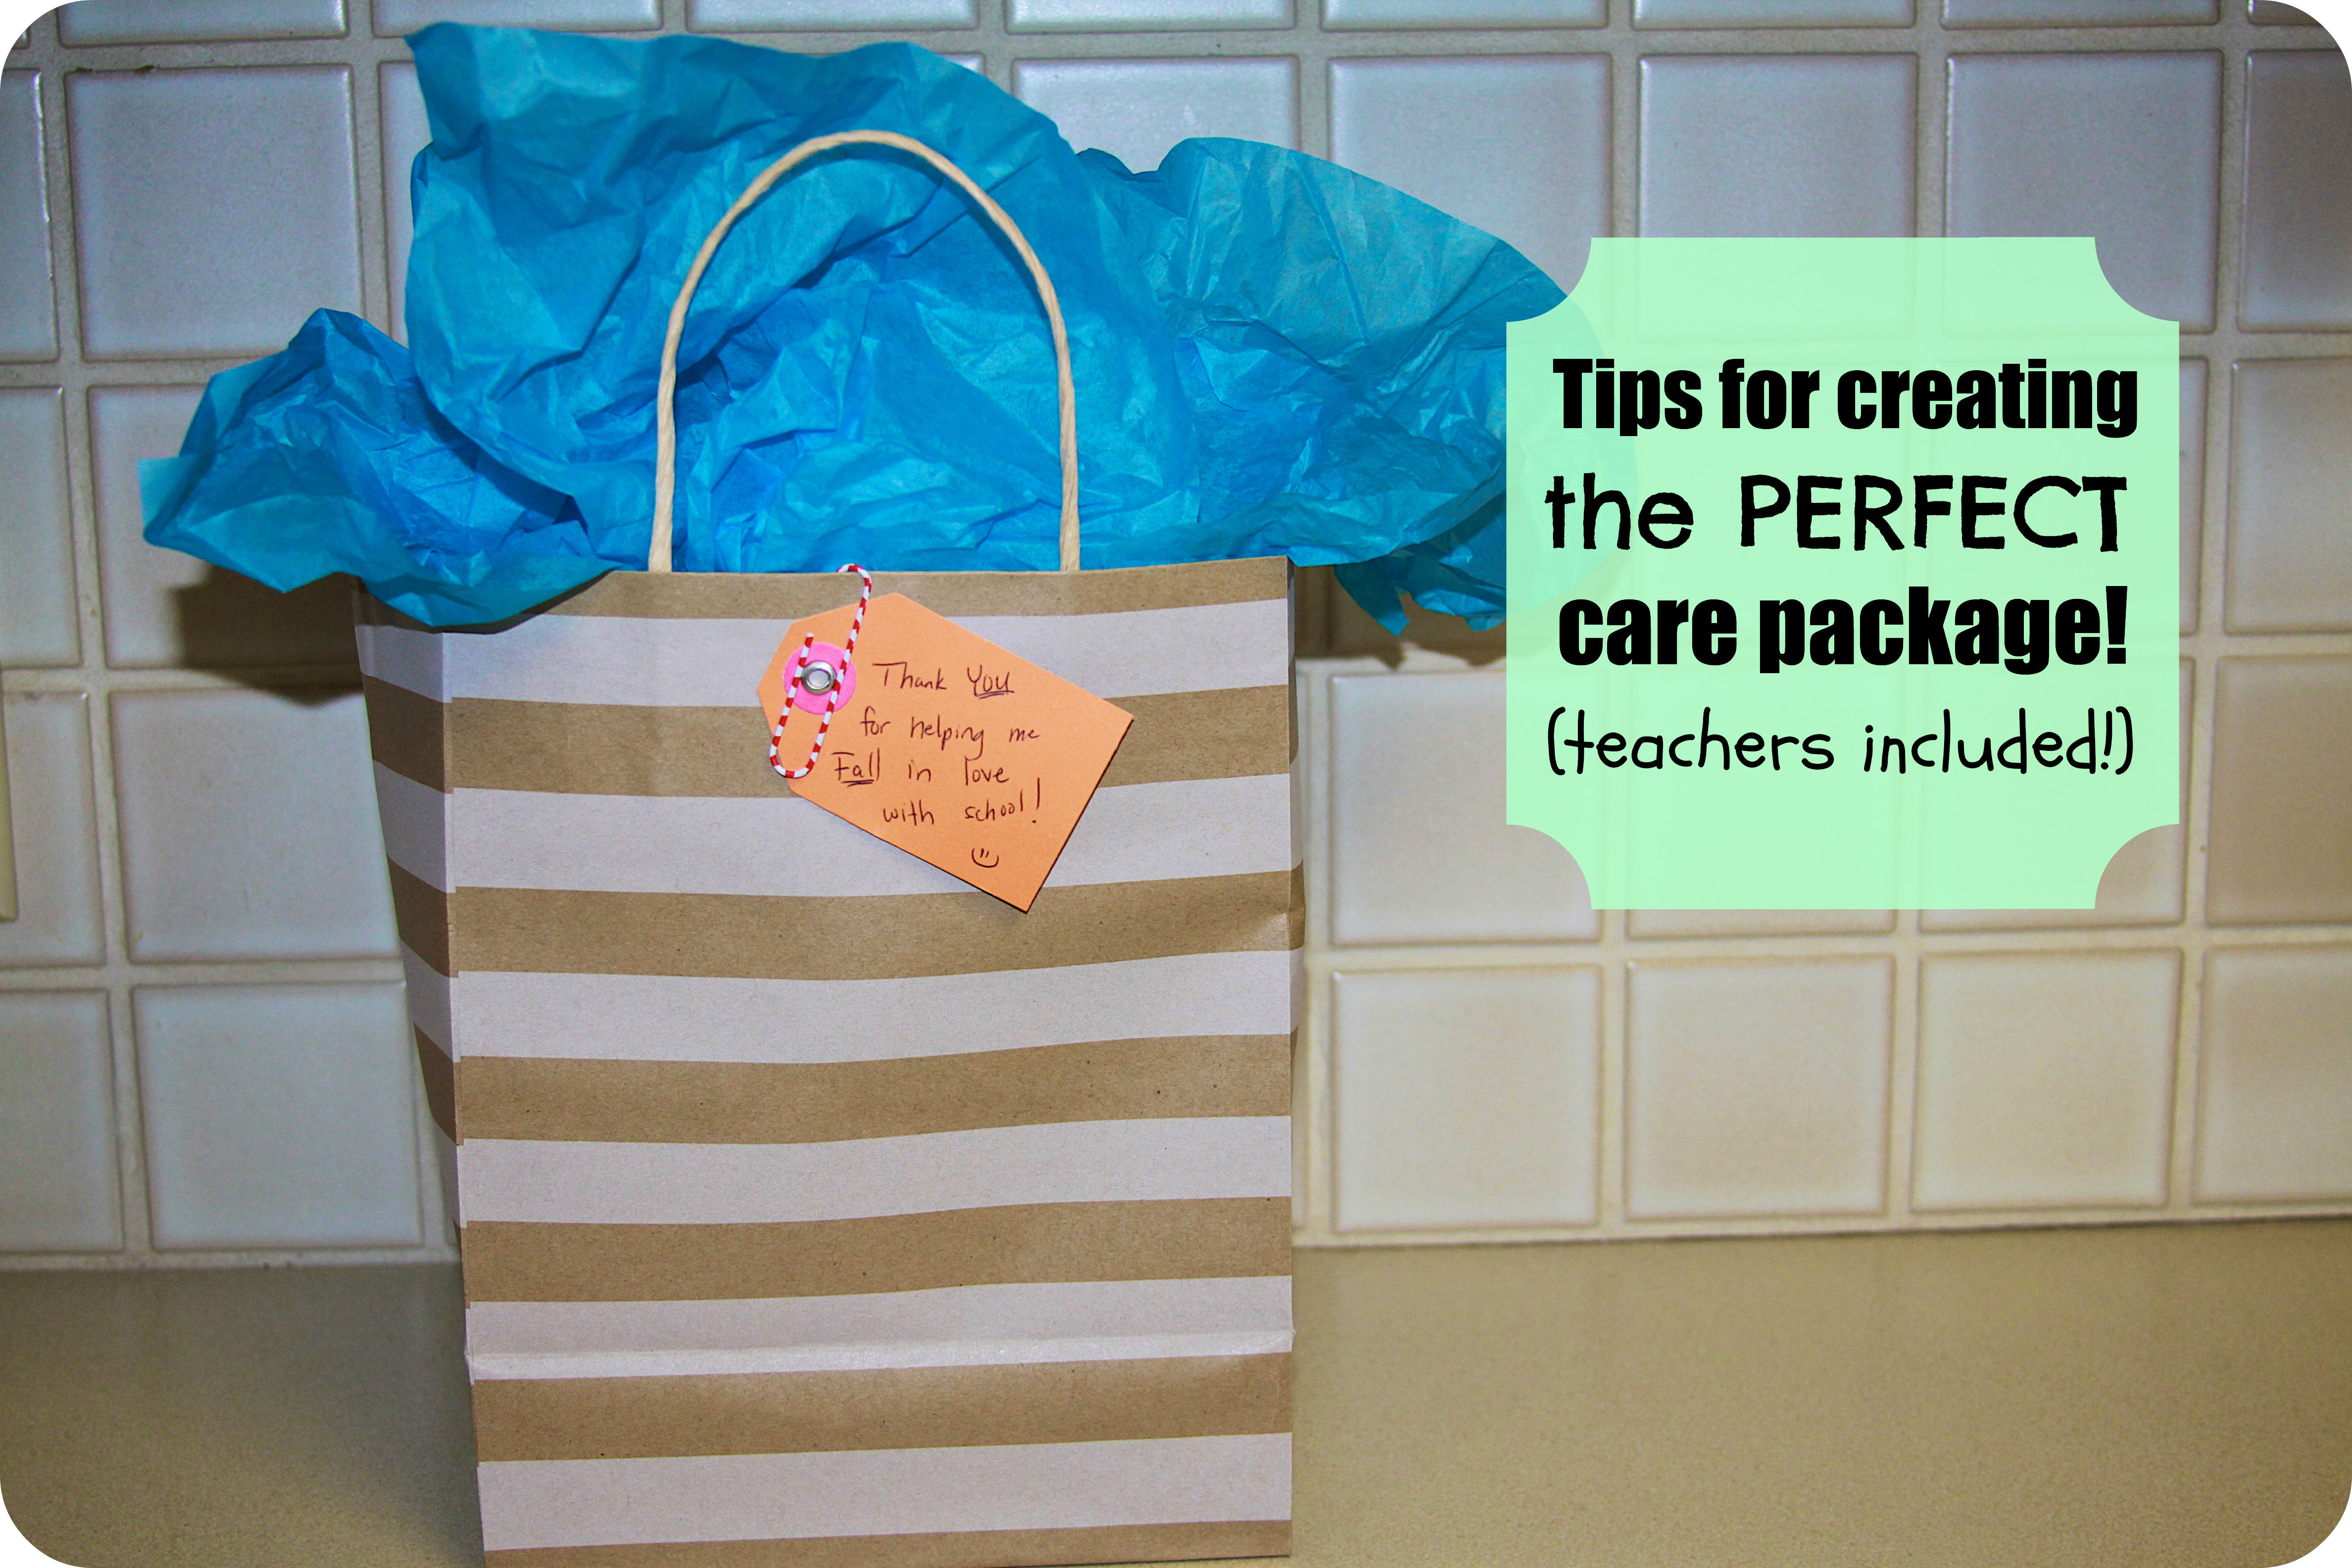 tips for creating the perfect care package